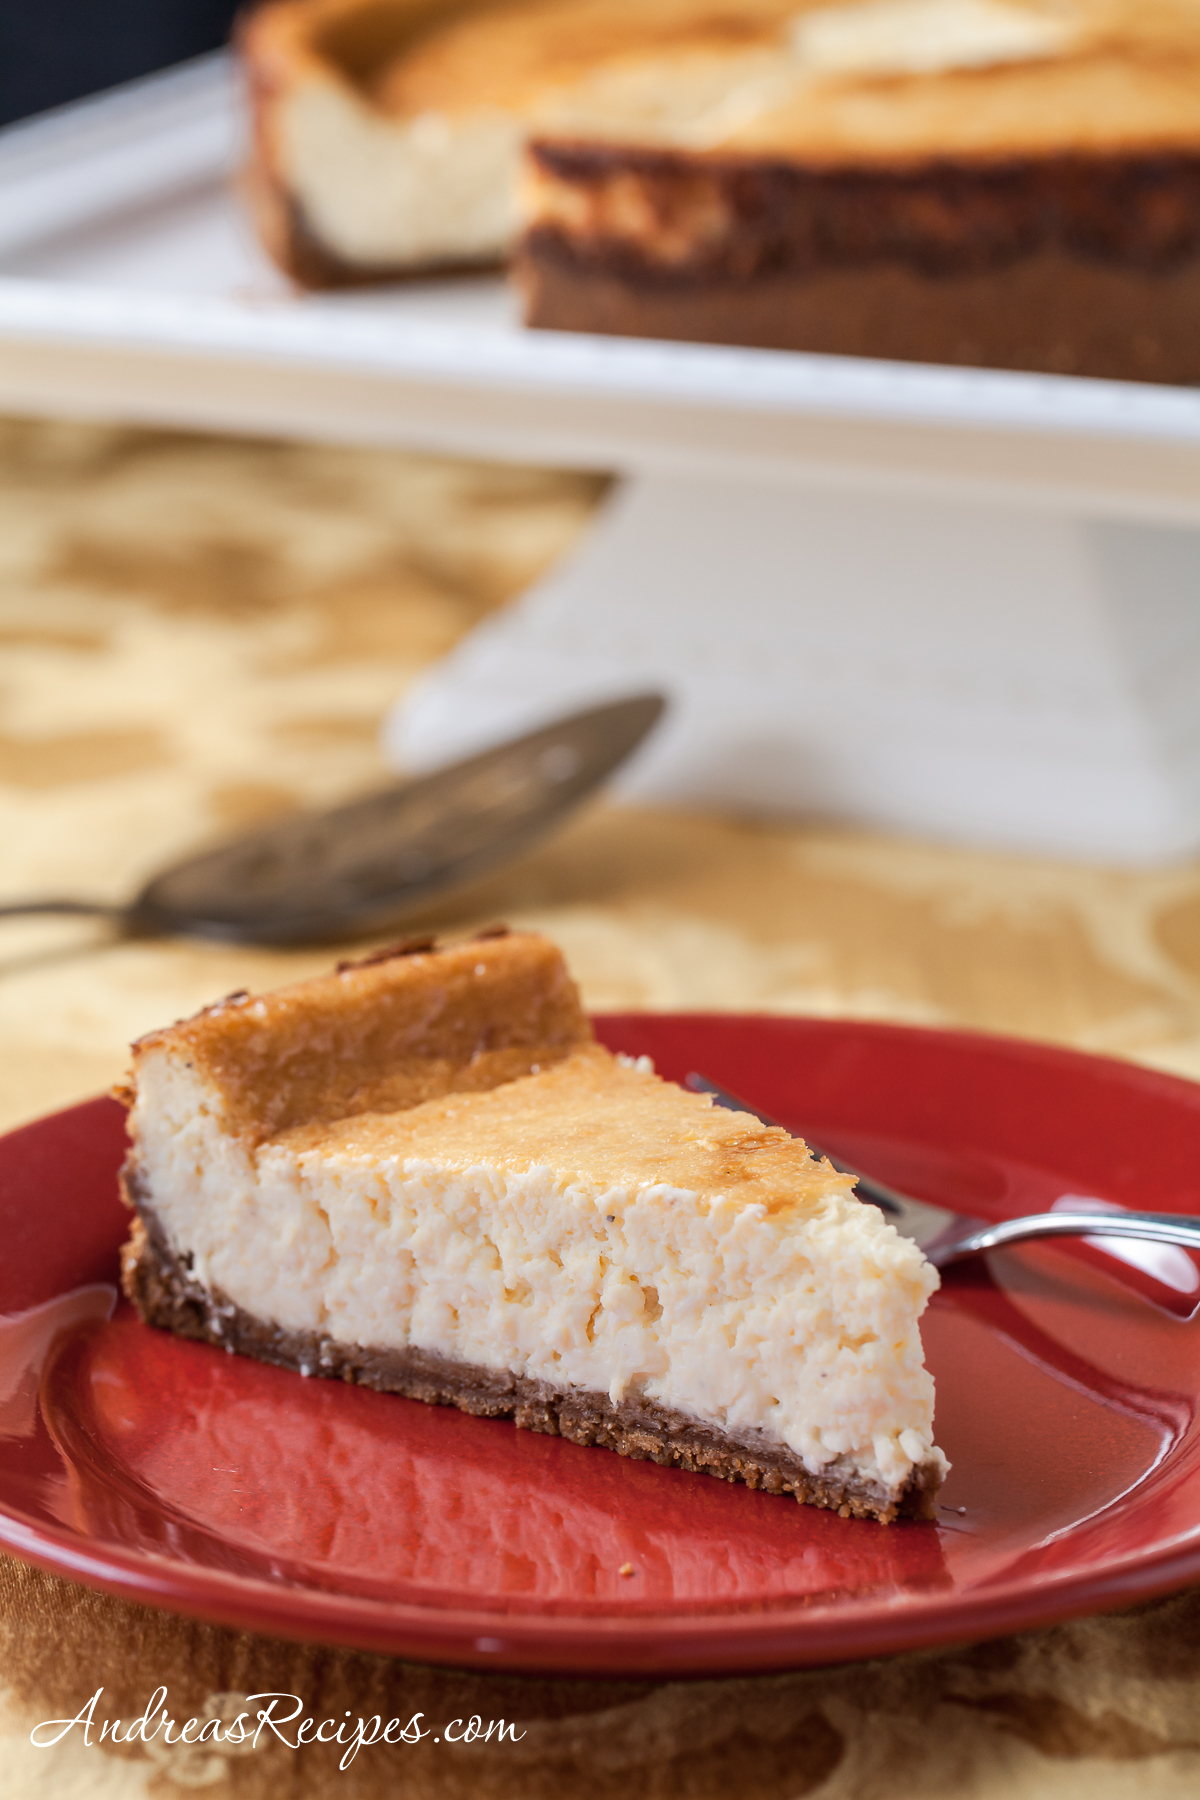 Eggnog Cheesecake with Dark Rum and Biscoff Cookie Crust - Andrea Meyers